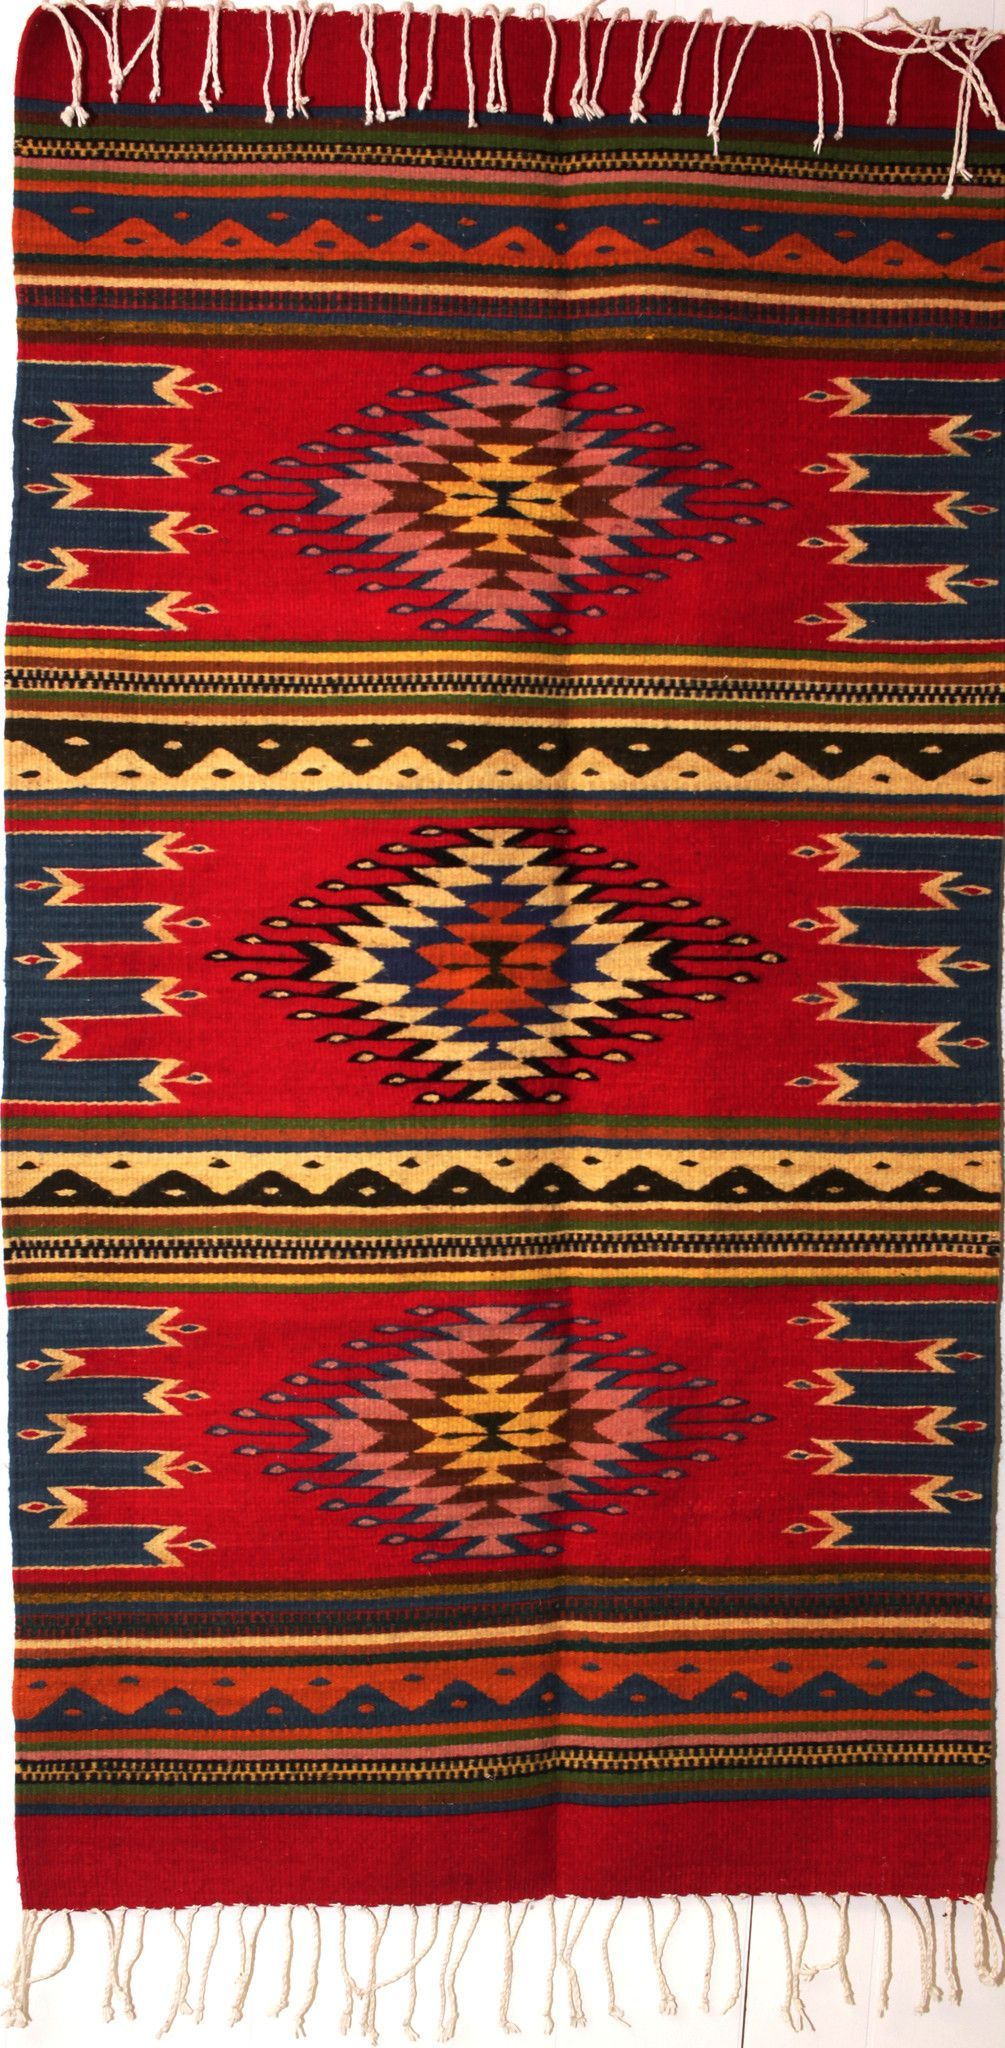 Covered Call Screener Covered Calls Rugs Navajo Rugs Woven Rug